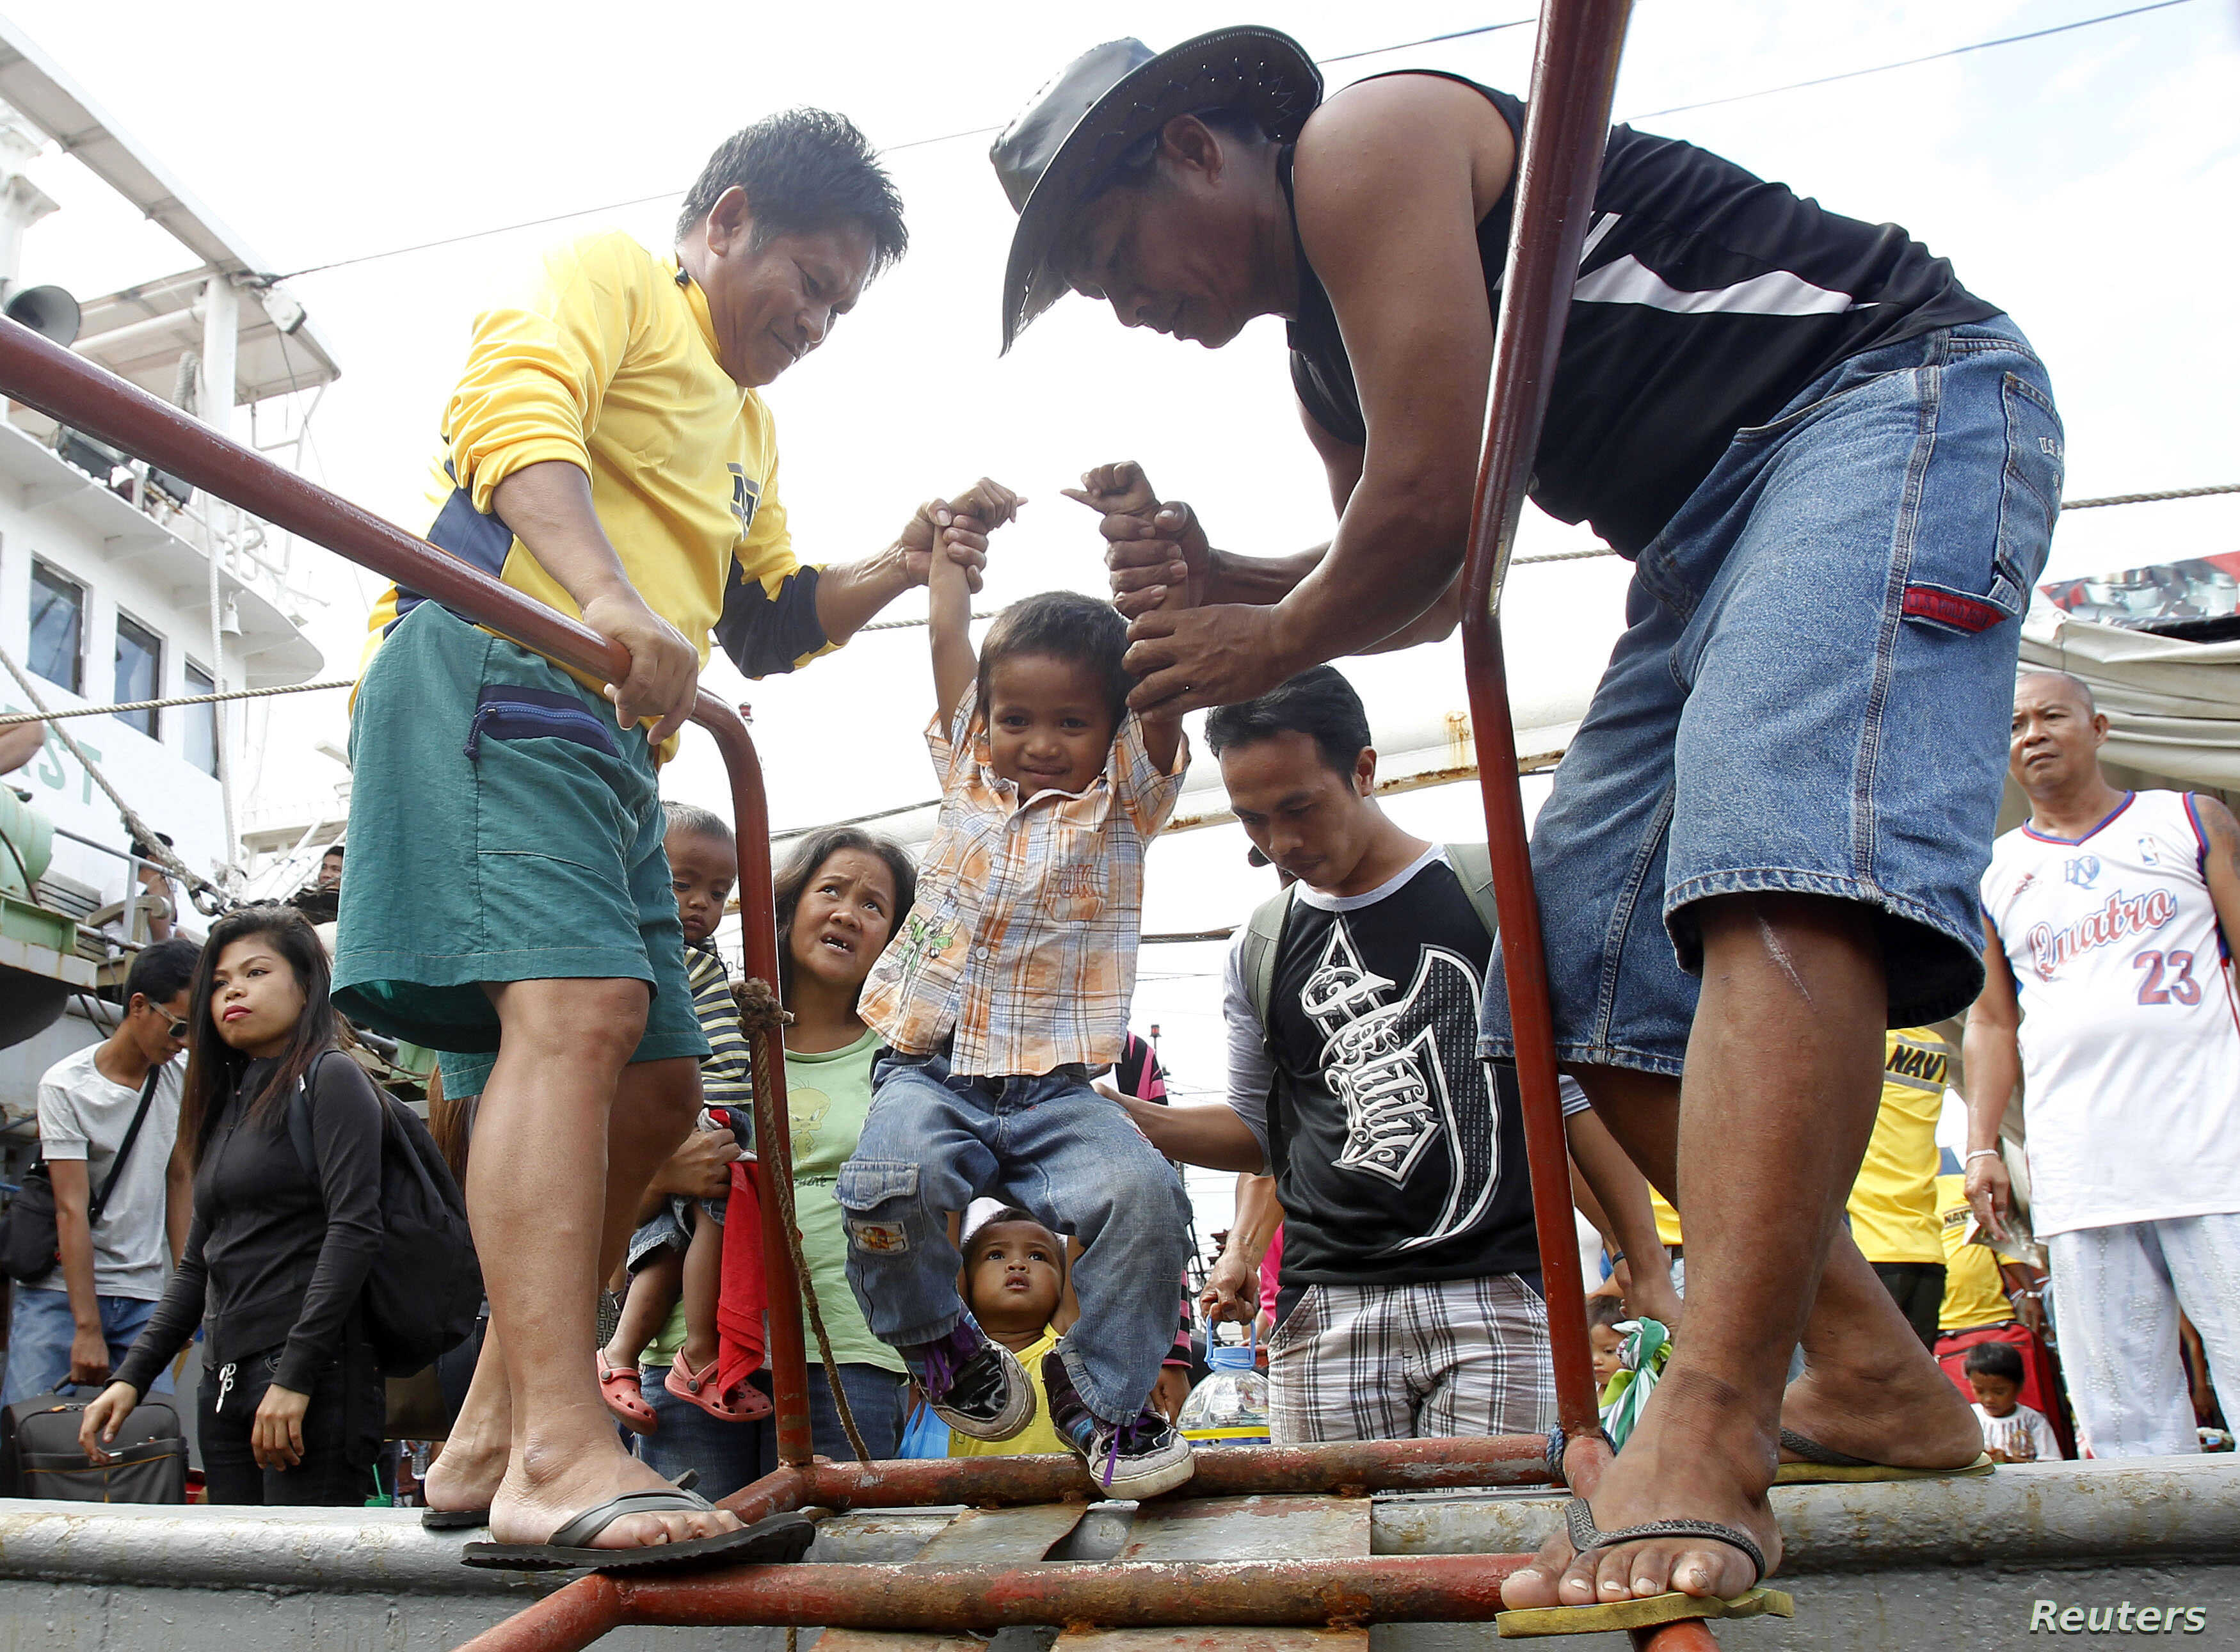 A child survivor of super Typhoon Haiyan is given assistance as he disembarks from a Philippine Navy ship upon arrival at the north harbor in Manila, Nov. 29, 2013.